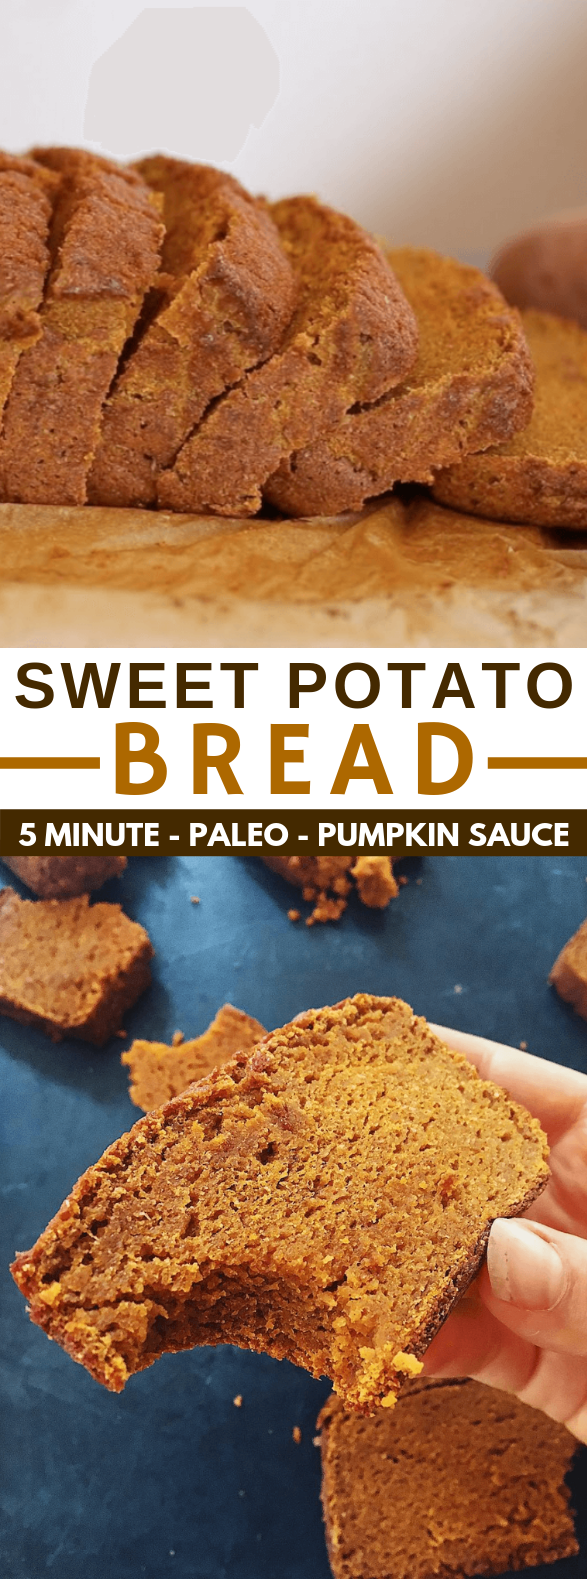 SWEET POTATO PUMPKIN SPICE PALEO BREAD #diet #glutenfree